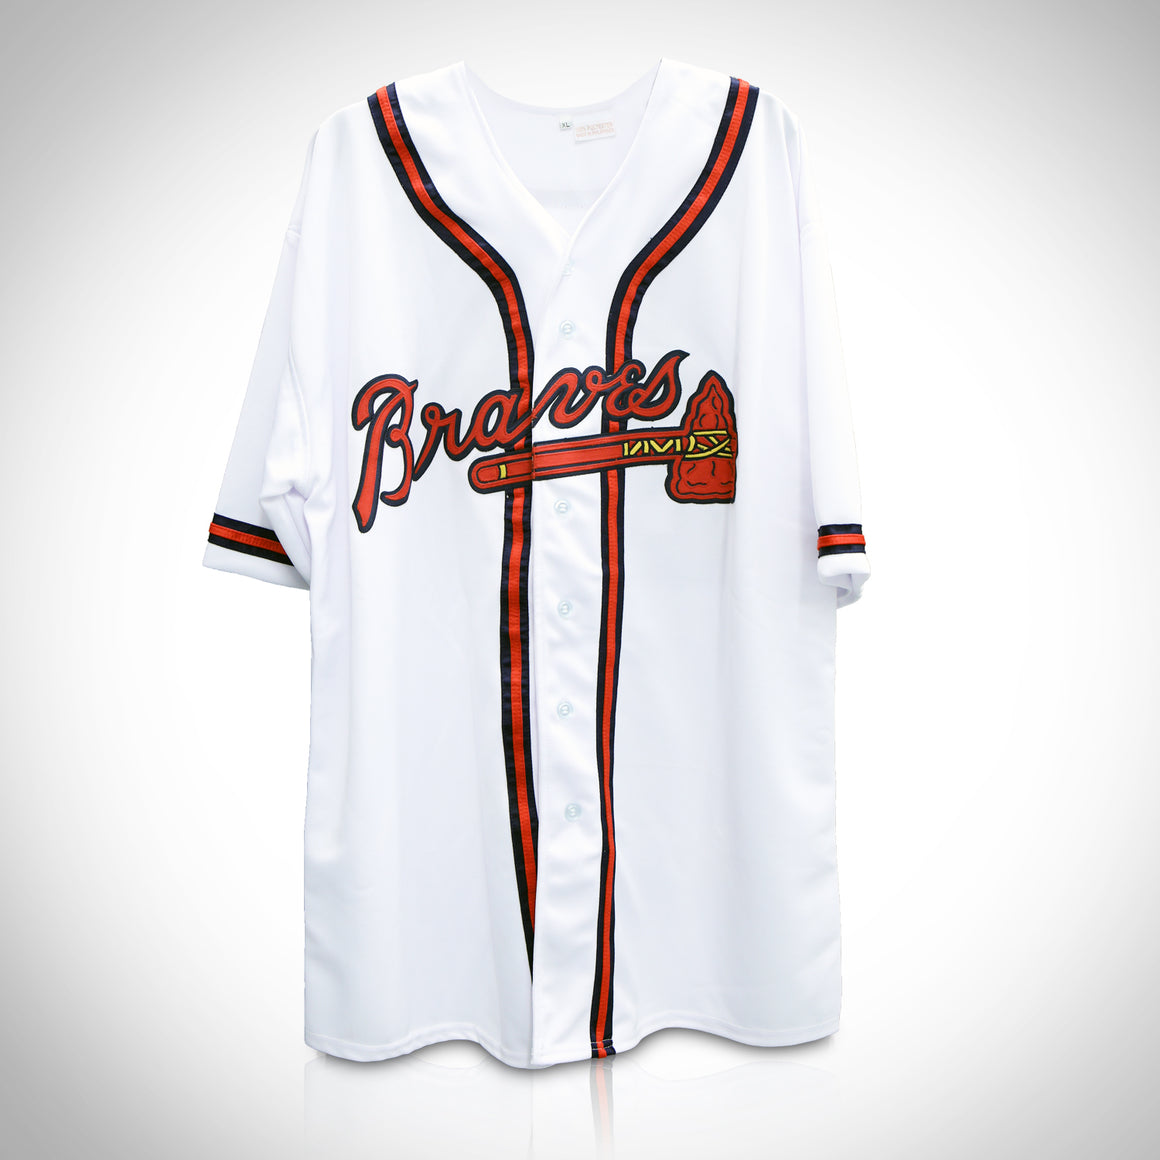 'ATLANTA BRAVES JERSEY HANDSIGNED BY ANDRUW JONES'